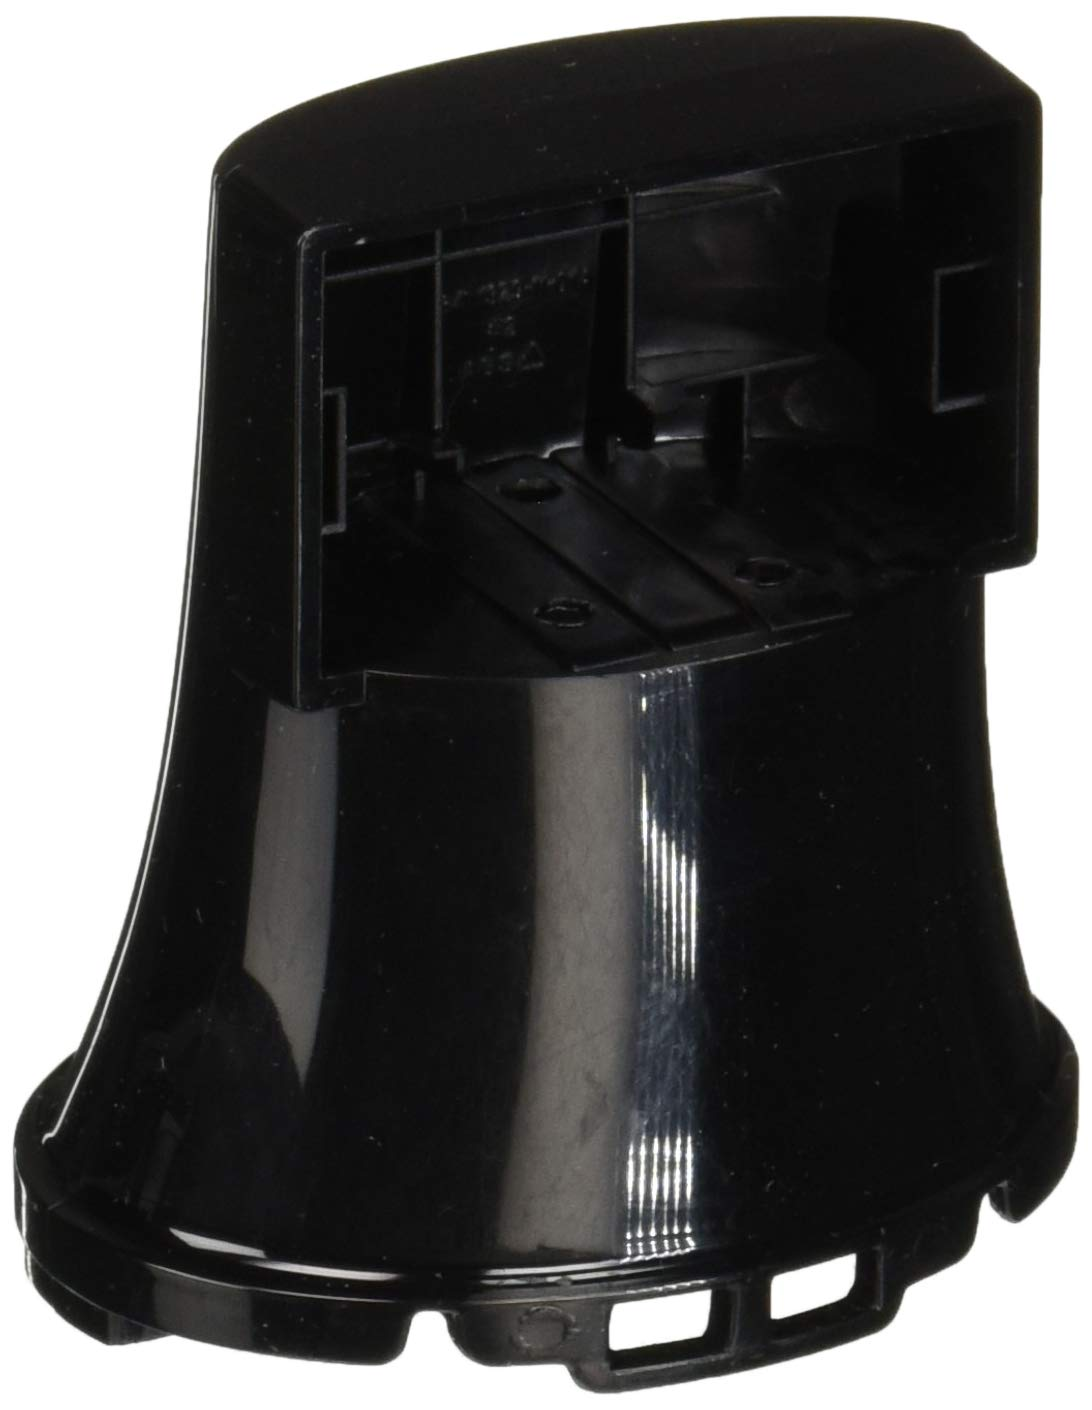 Haier TV-6775-29 Stand Support